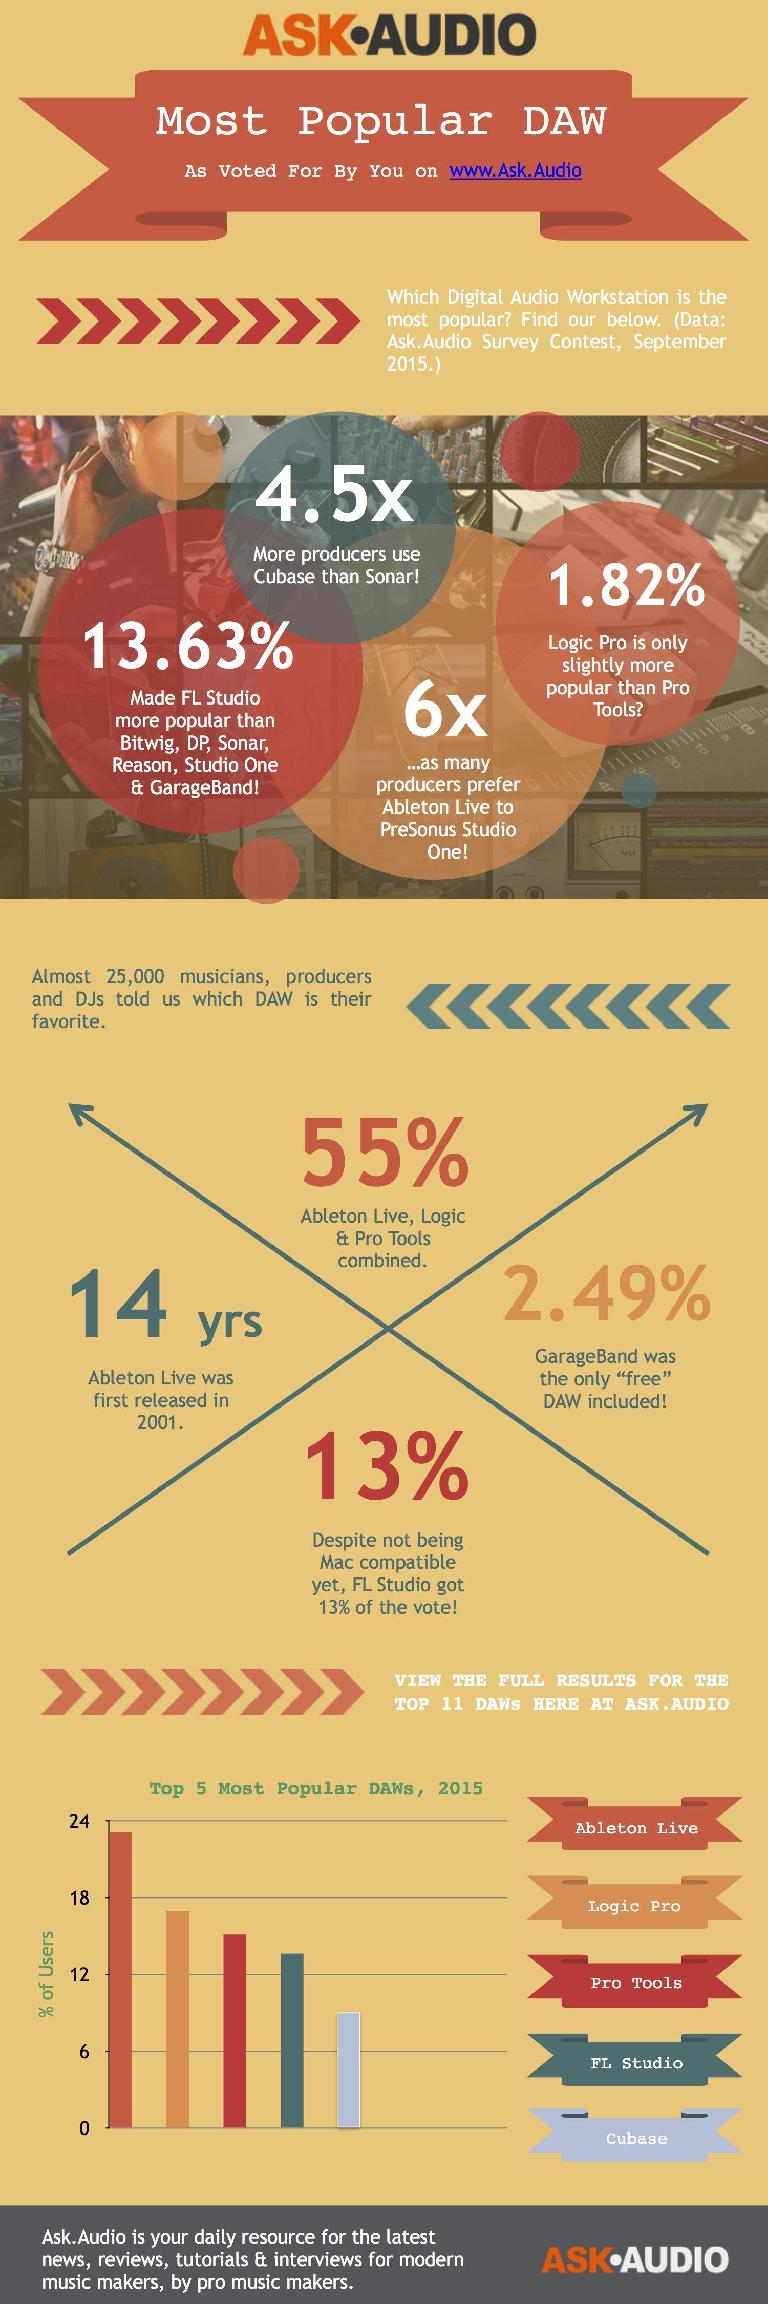 Ask.Audio Most Popular DAW infographic.